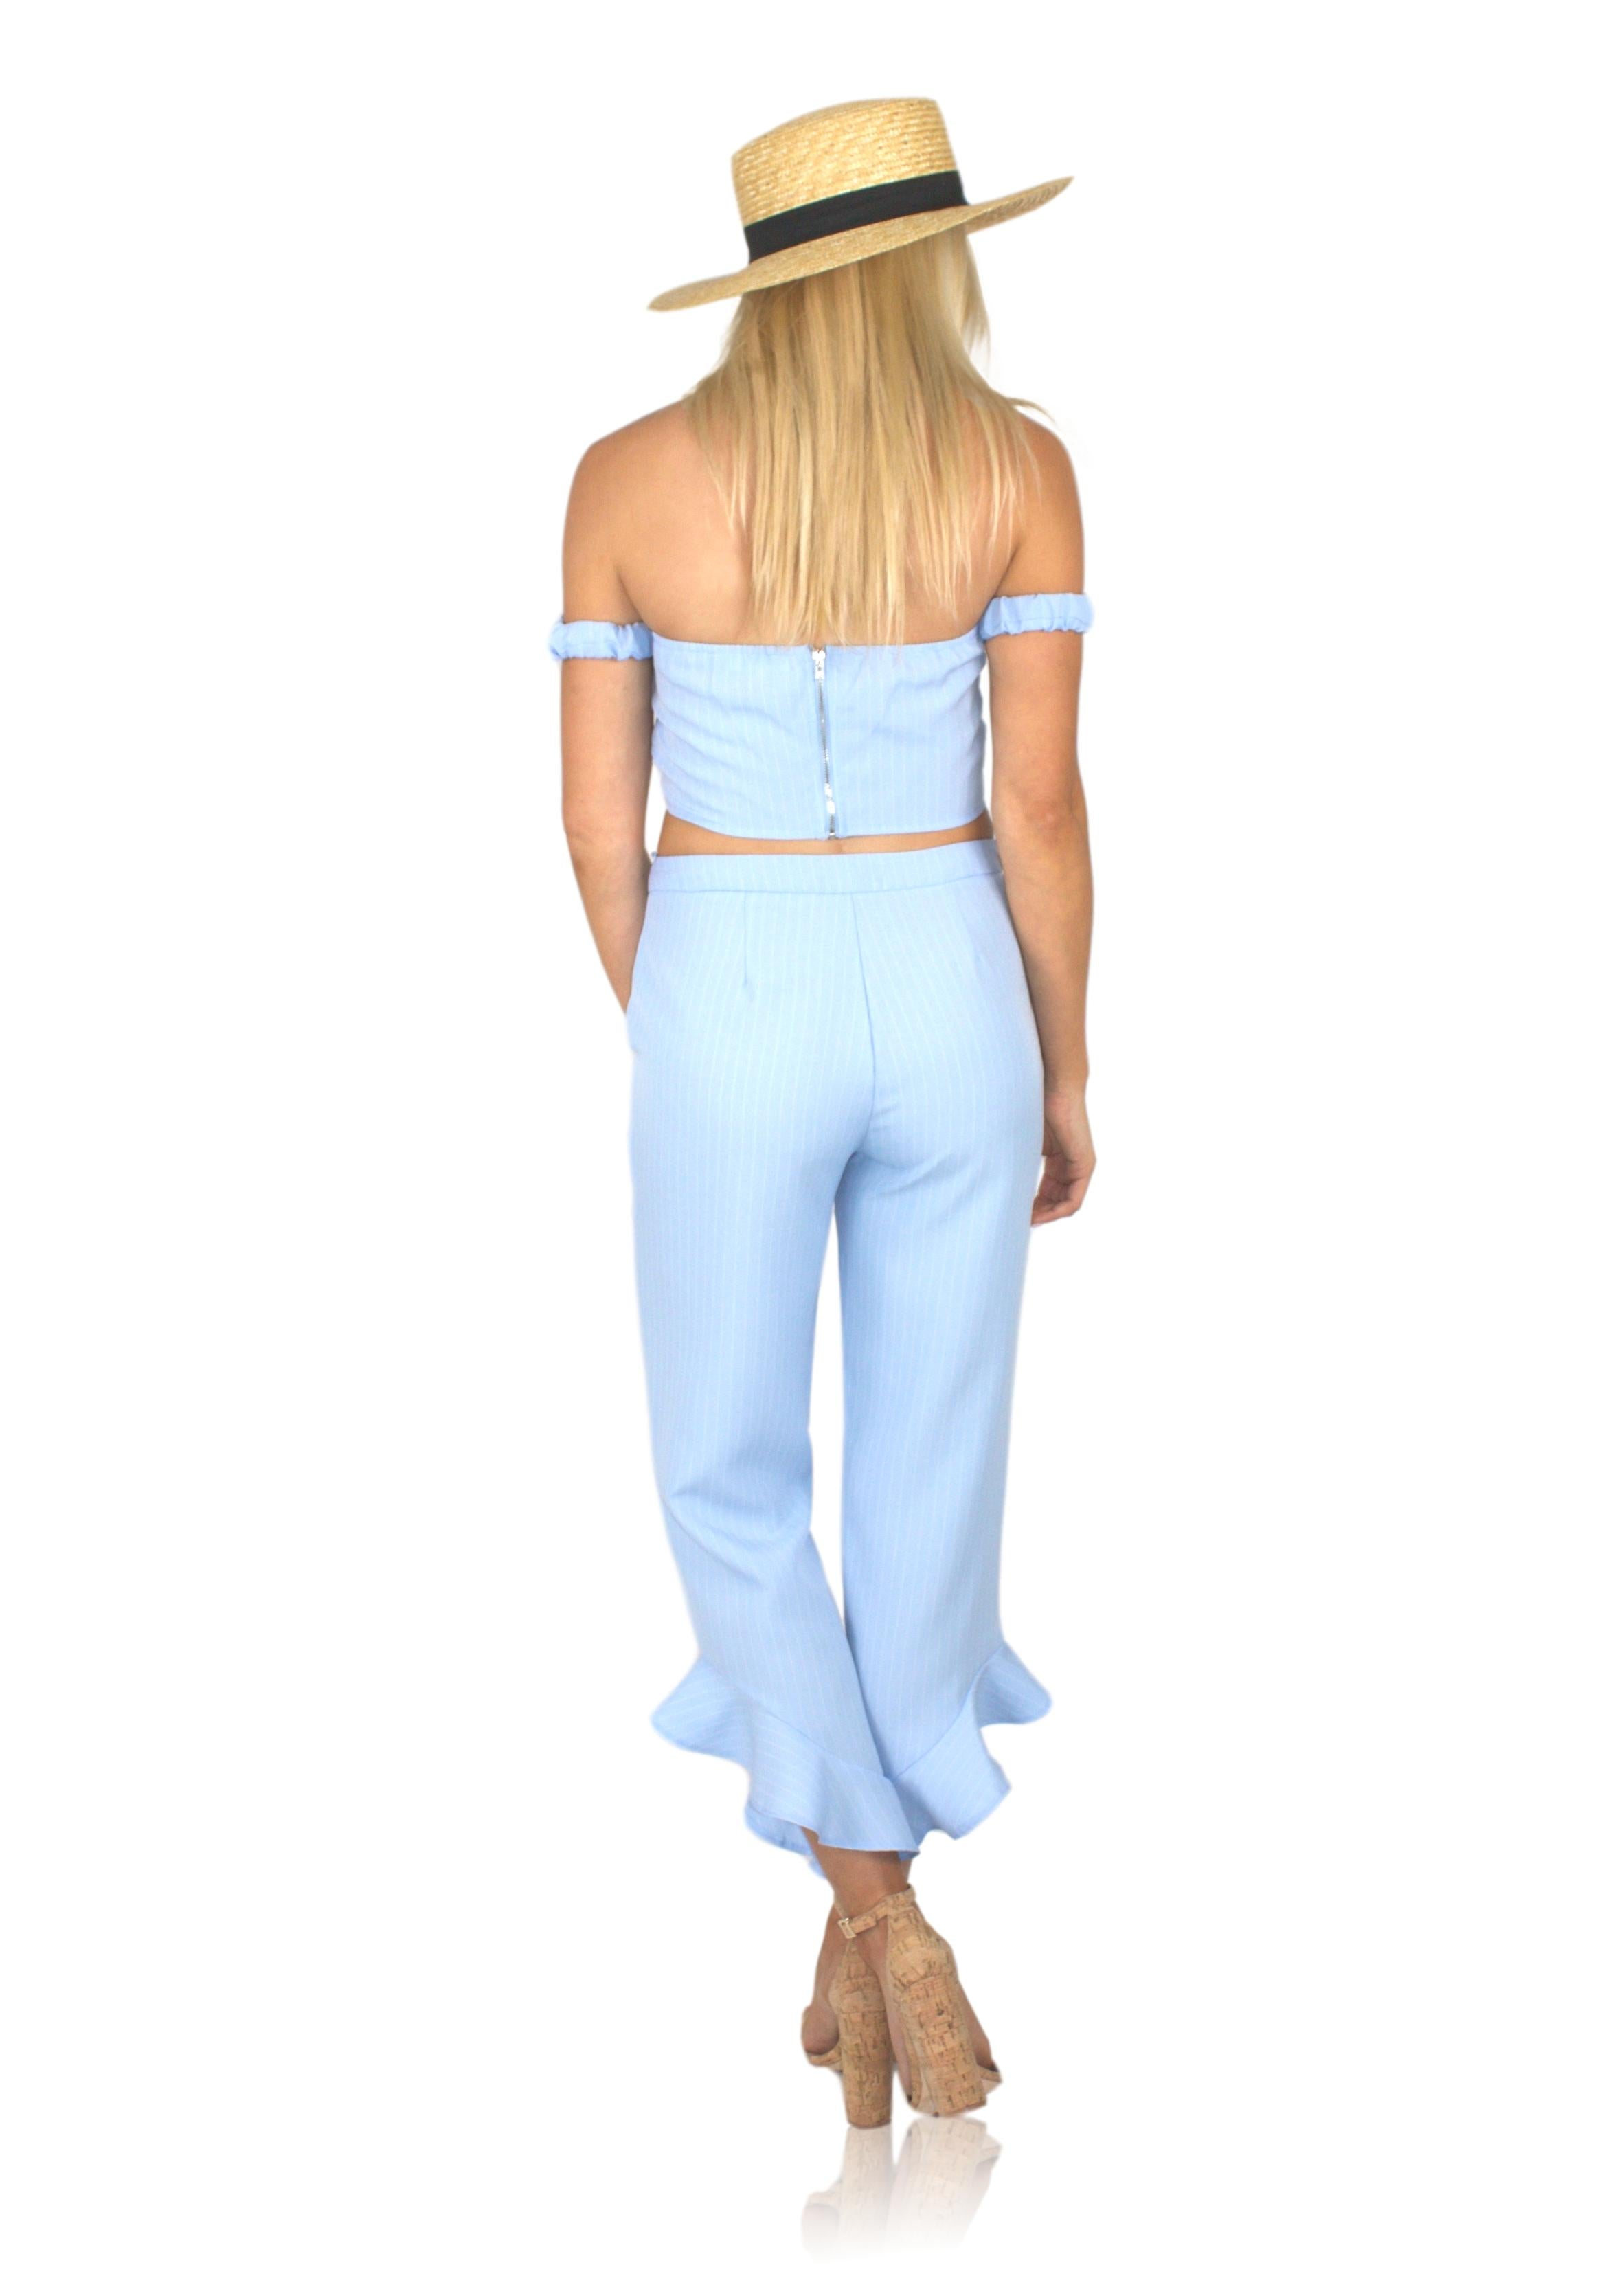 CHEAP FRILLS CROP TOP IN BLUE